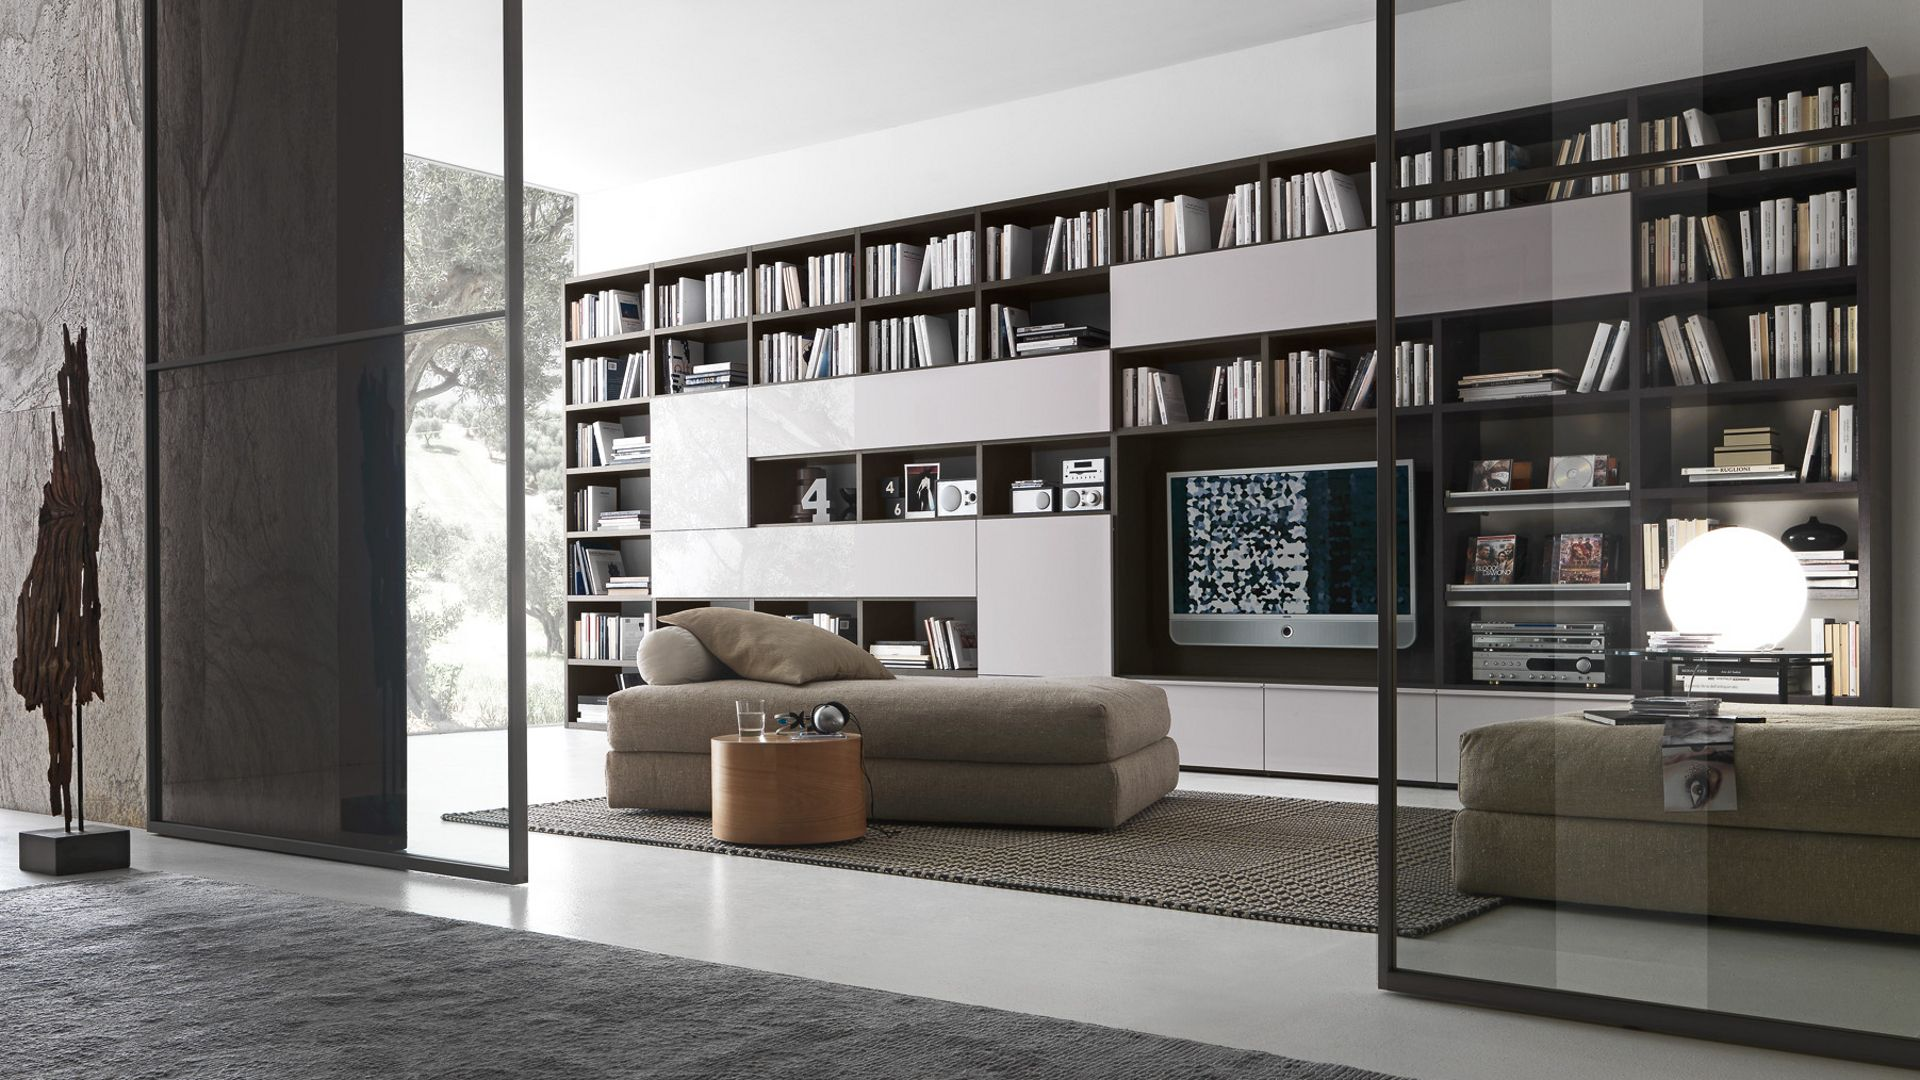 Modern Modular Bookcase Wall Unit Presotto Italia For The Home  # Grande Bibliotheque Avec Porte Coulissante